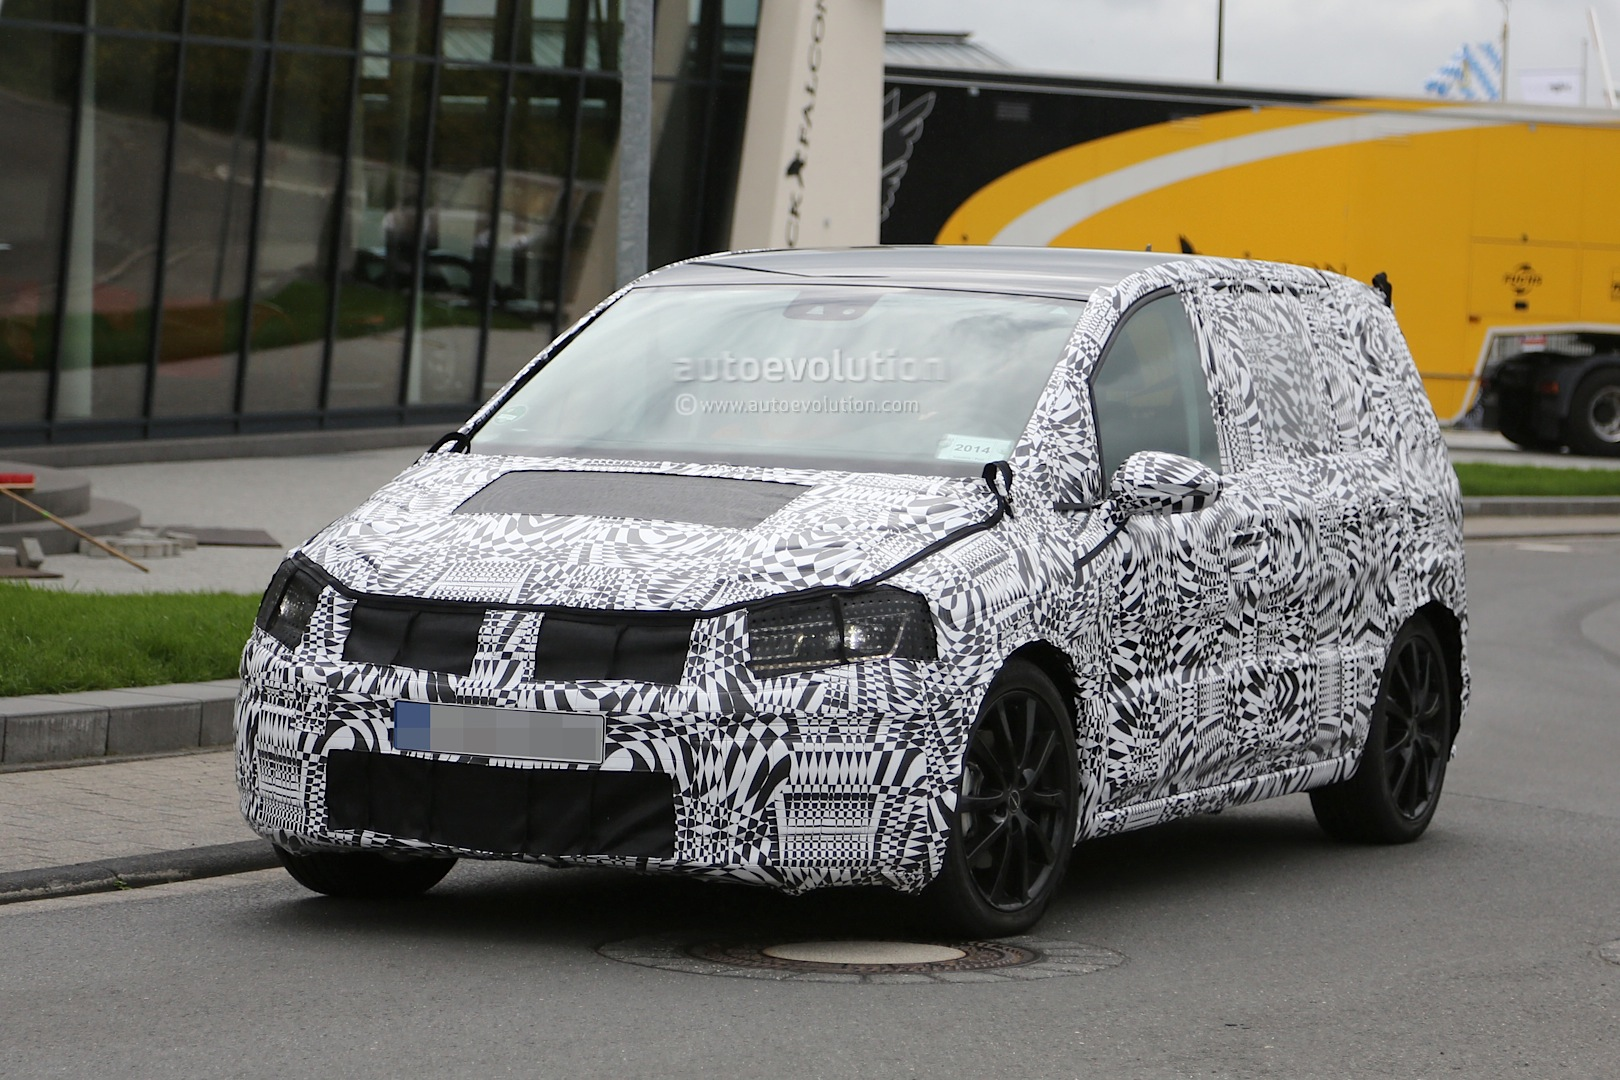 2015 Volkswagen Touran Spied With Led Headlights